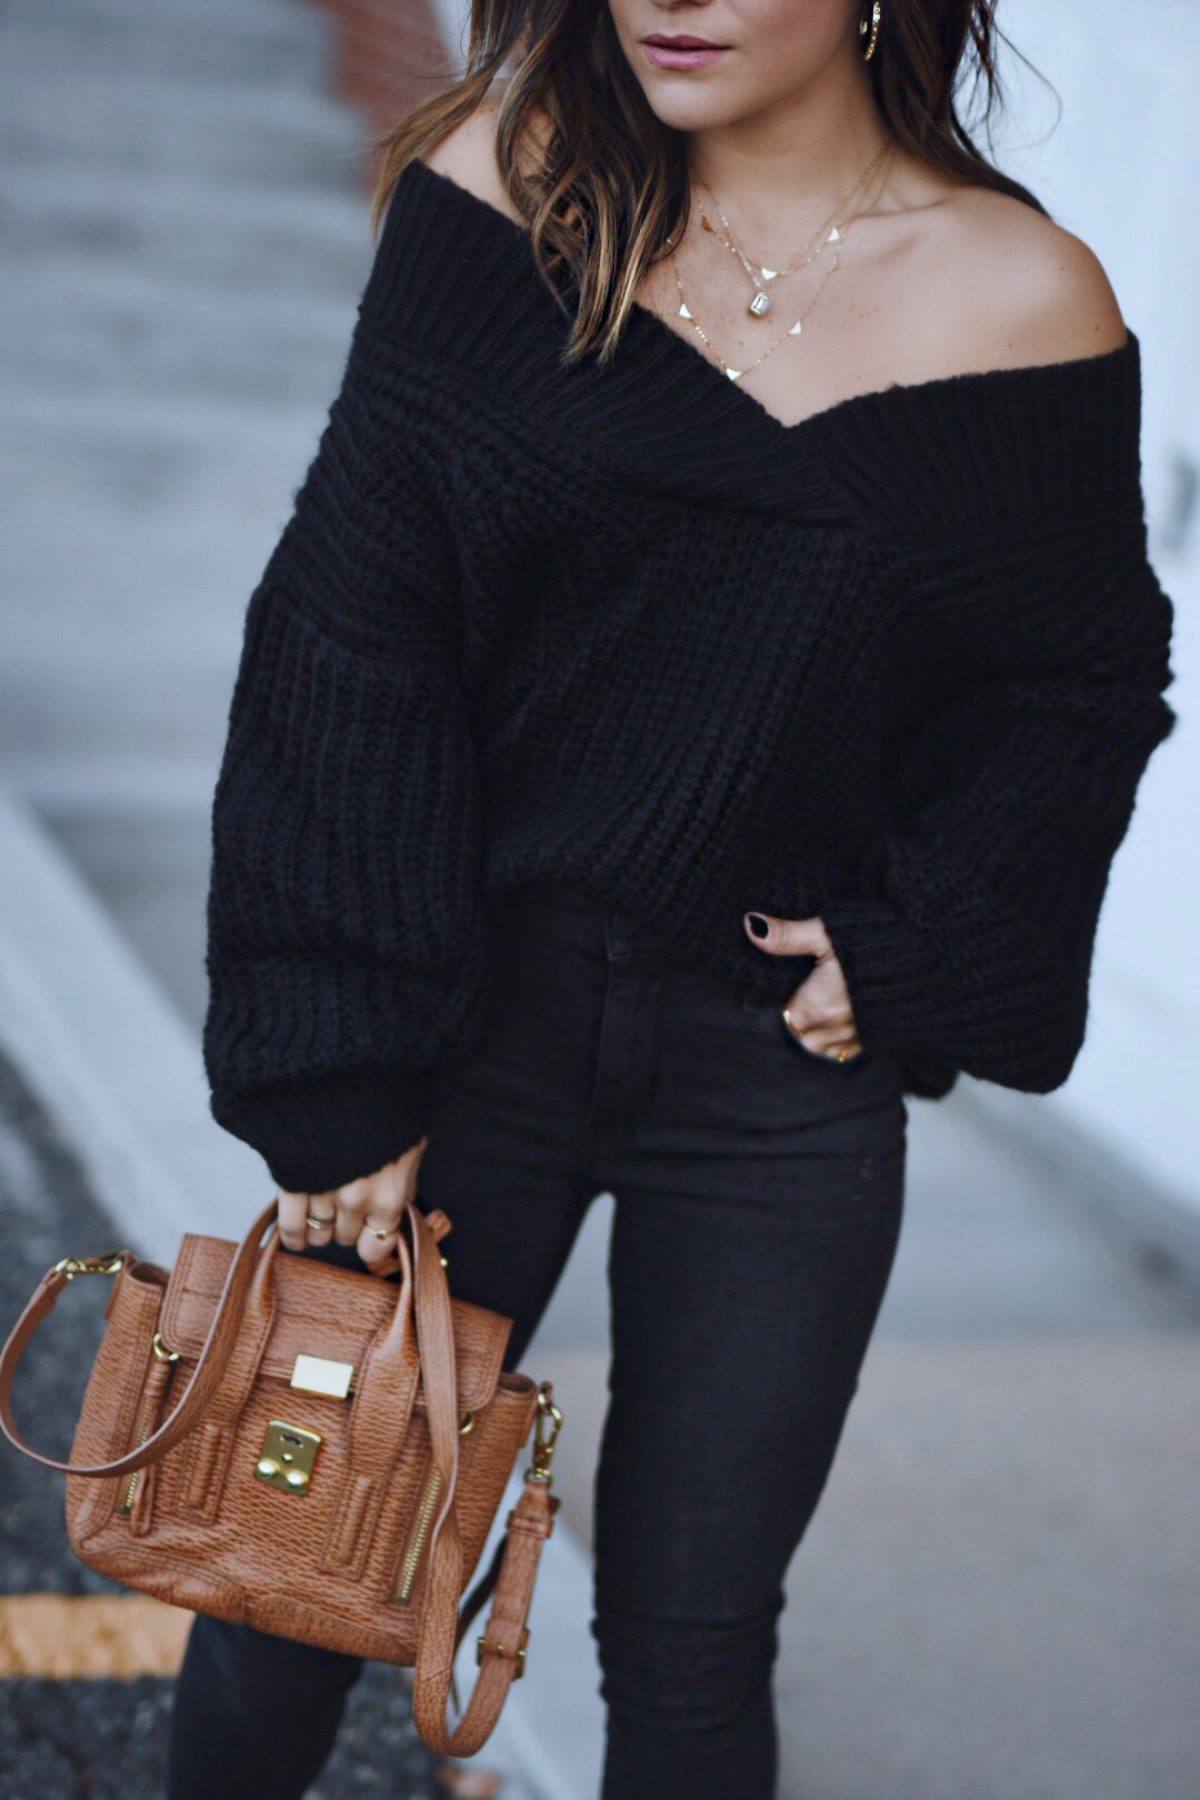 Carolina Hellal of Chic Talk wearing a shein knit sweater, topshop jeans, 3.1 phillip lim bag, johnston & Murphy boots and marc jacobs watch - NORDSTROM FALL SALE TOP PICKS by popular Denver fashion blogger Chic Talk